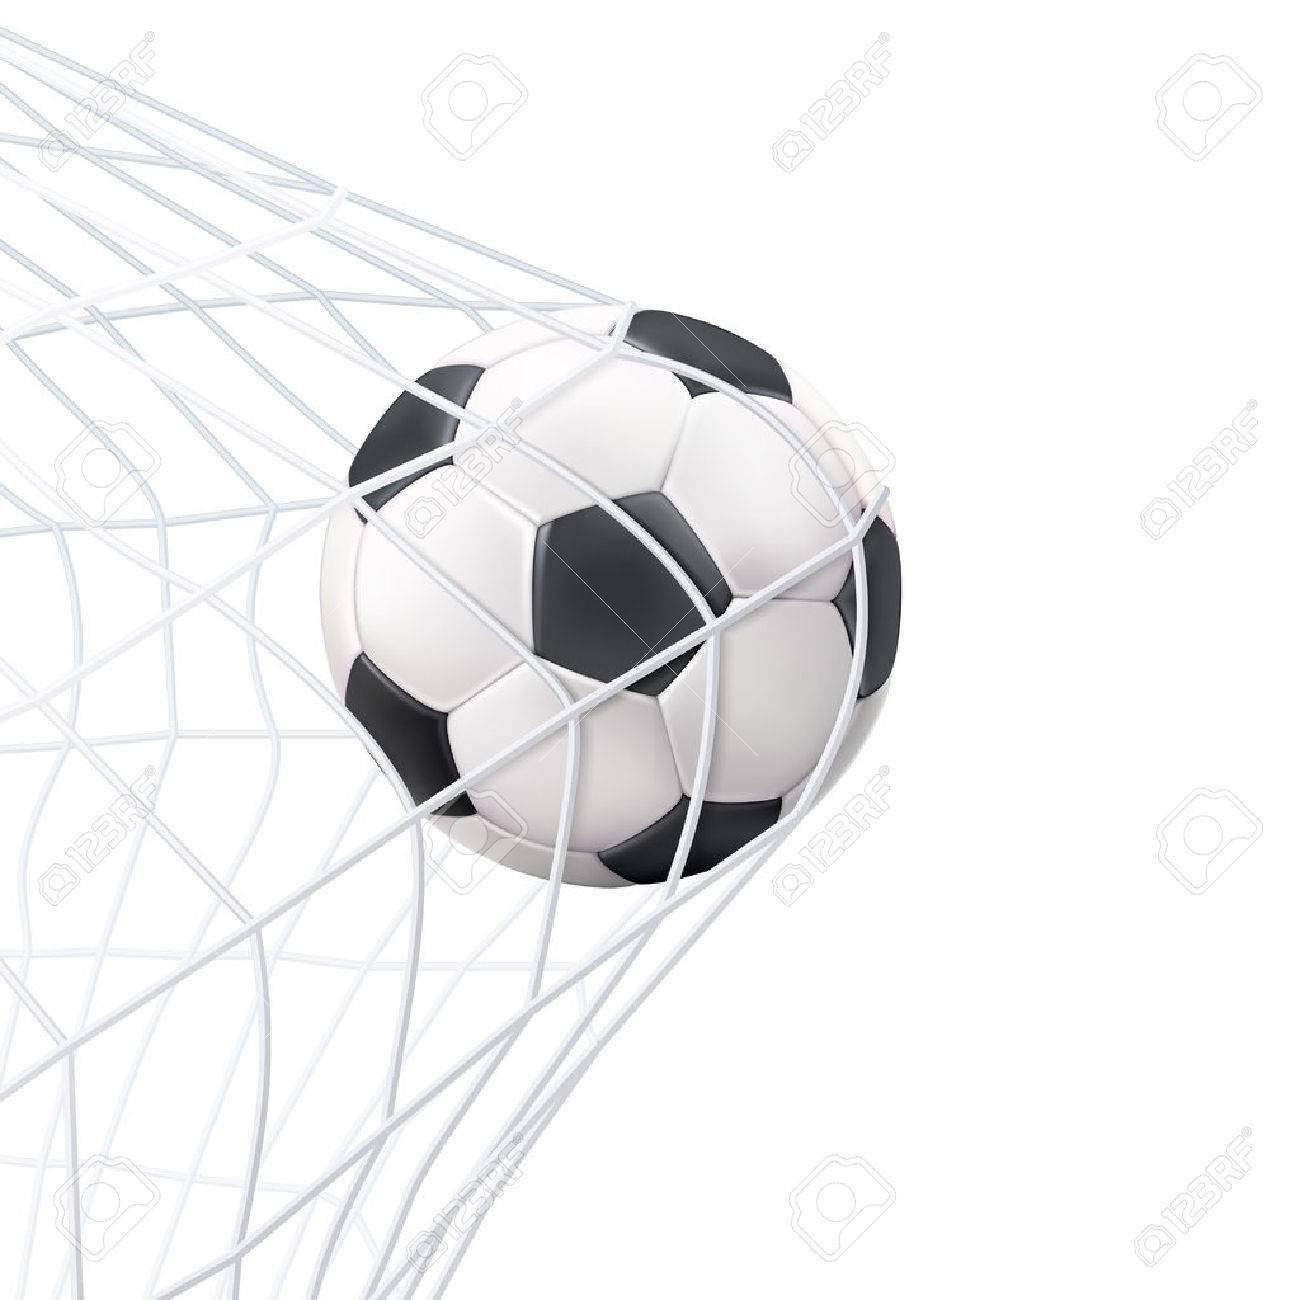 Soccer game match goal moment with ball in the net black white picture vector illustration - 51757292